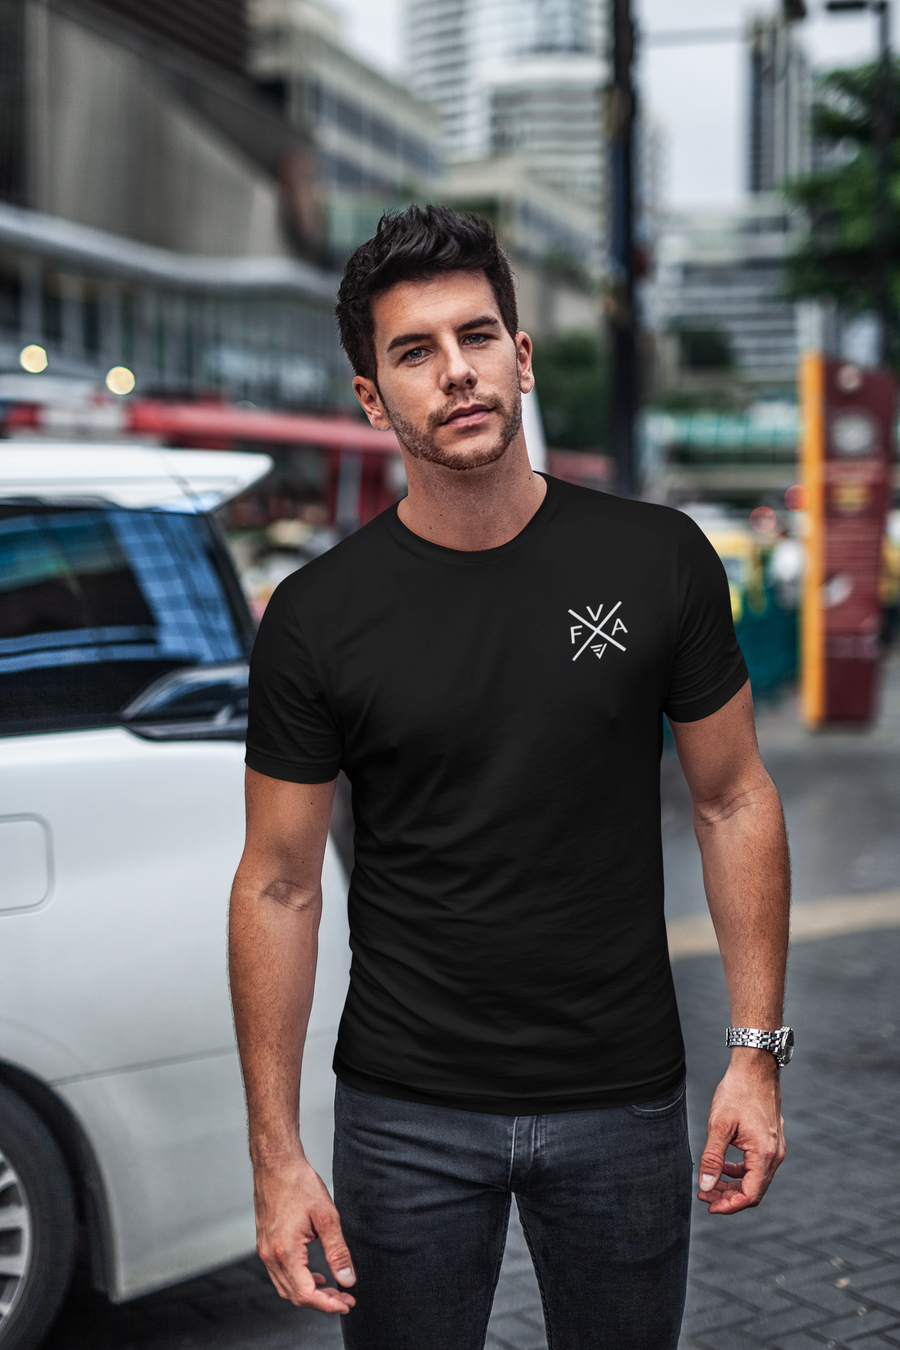 X Out T-Shirt